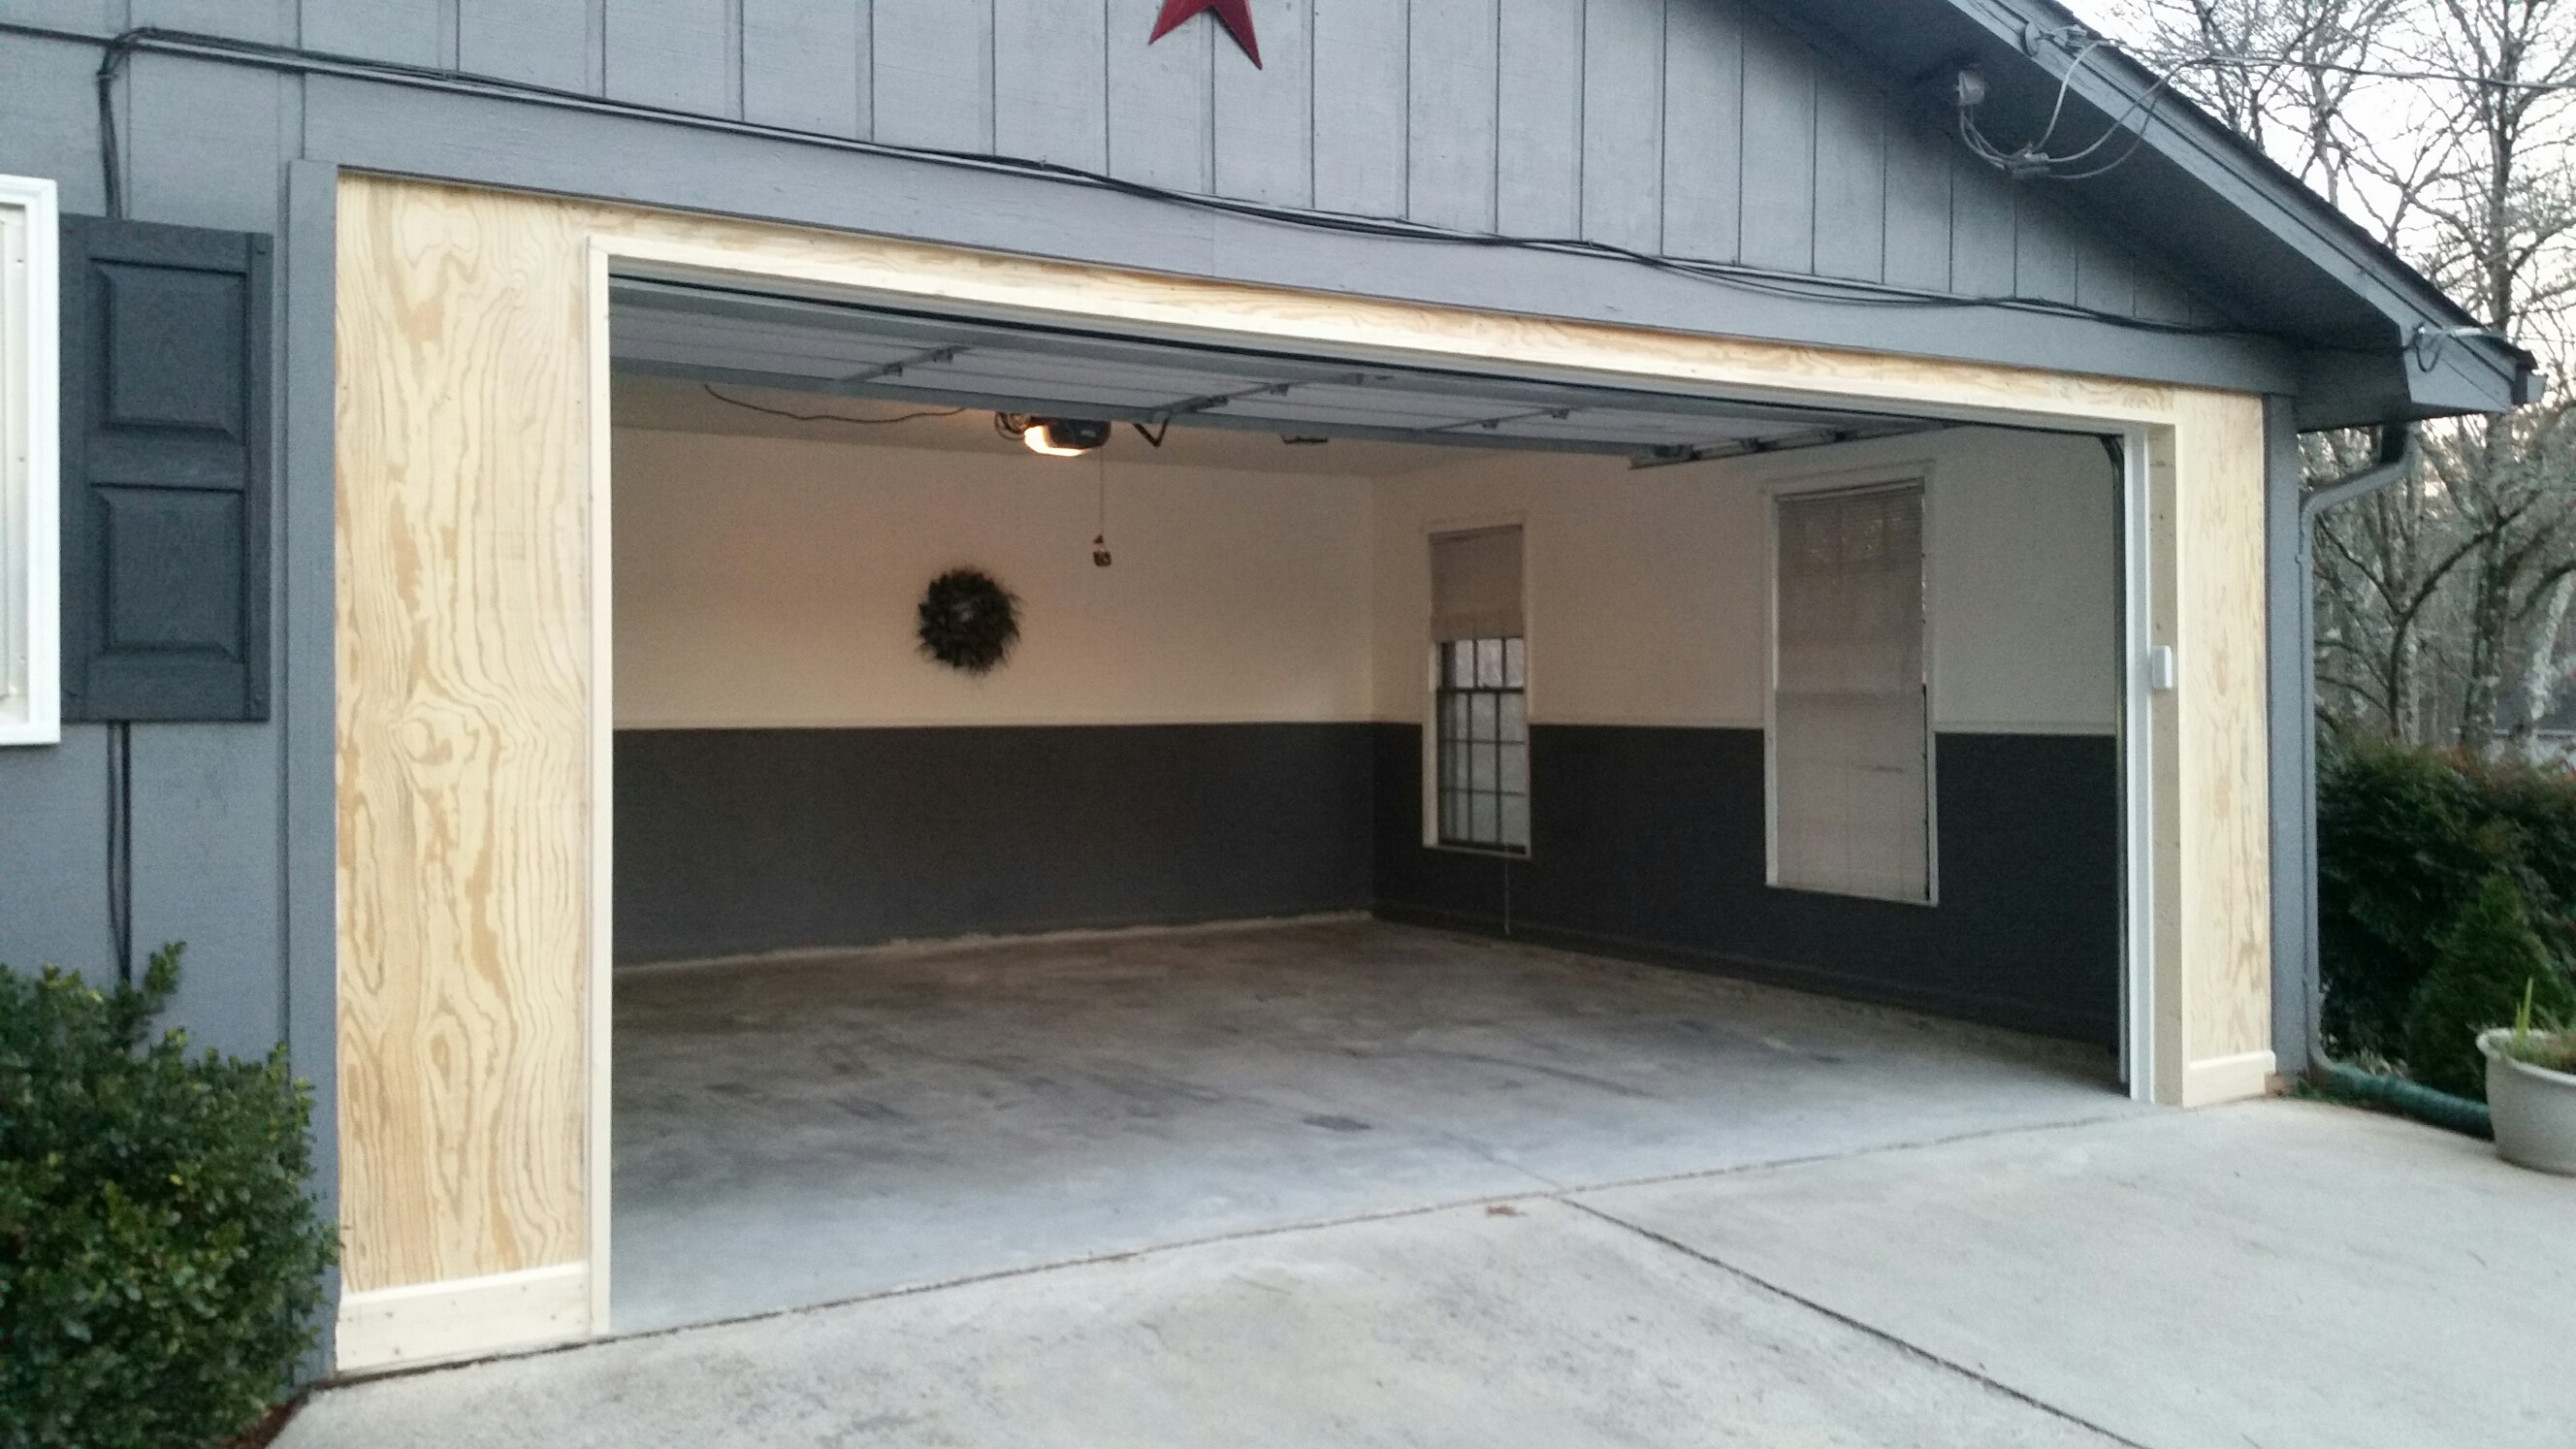 Carport To Garage Conversion | Overhead Door Of Georgia Carport Roll Up Garage Door